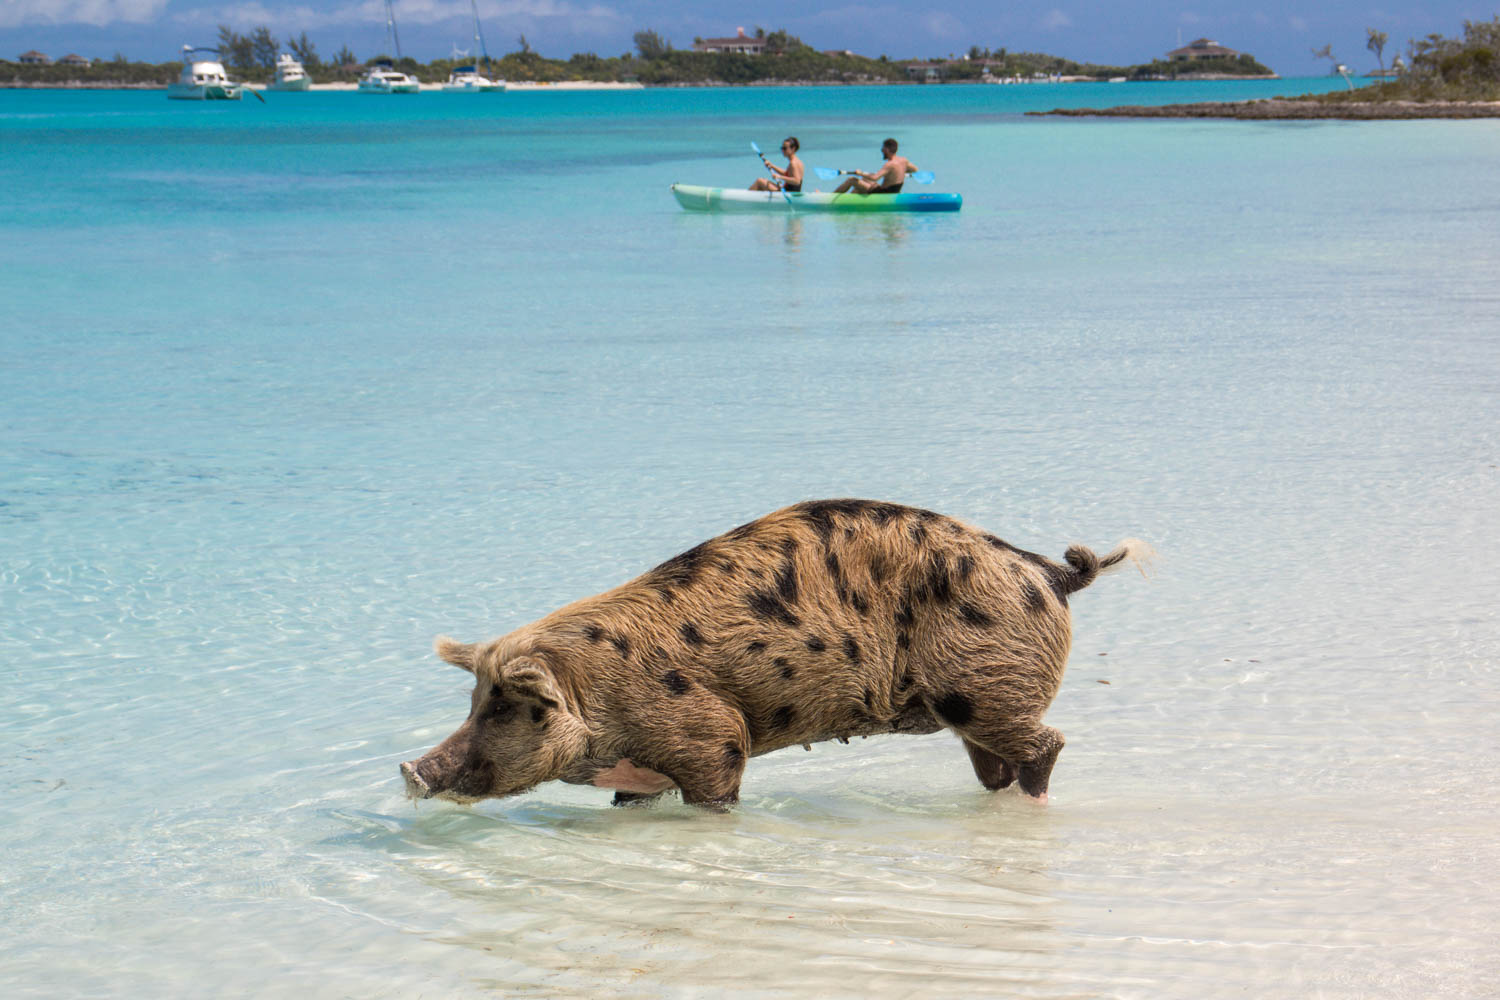 Big Major Cay is home to 25 pigs and piglets. Swimming Pigs Island is near Staniel Cay in the Exumas. Finding where is Pig Island is simple.